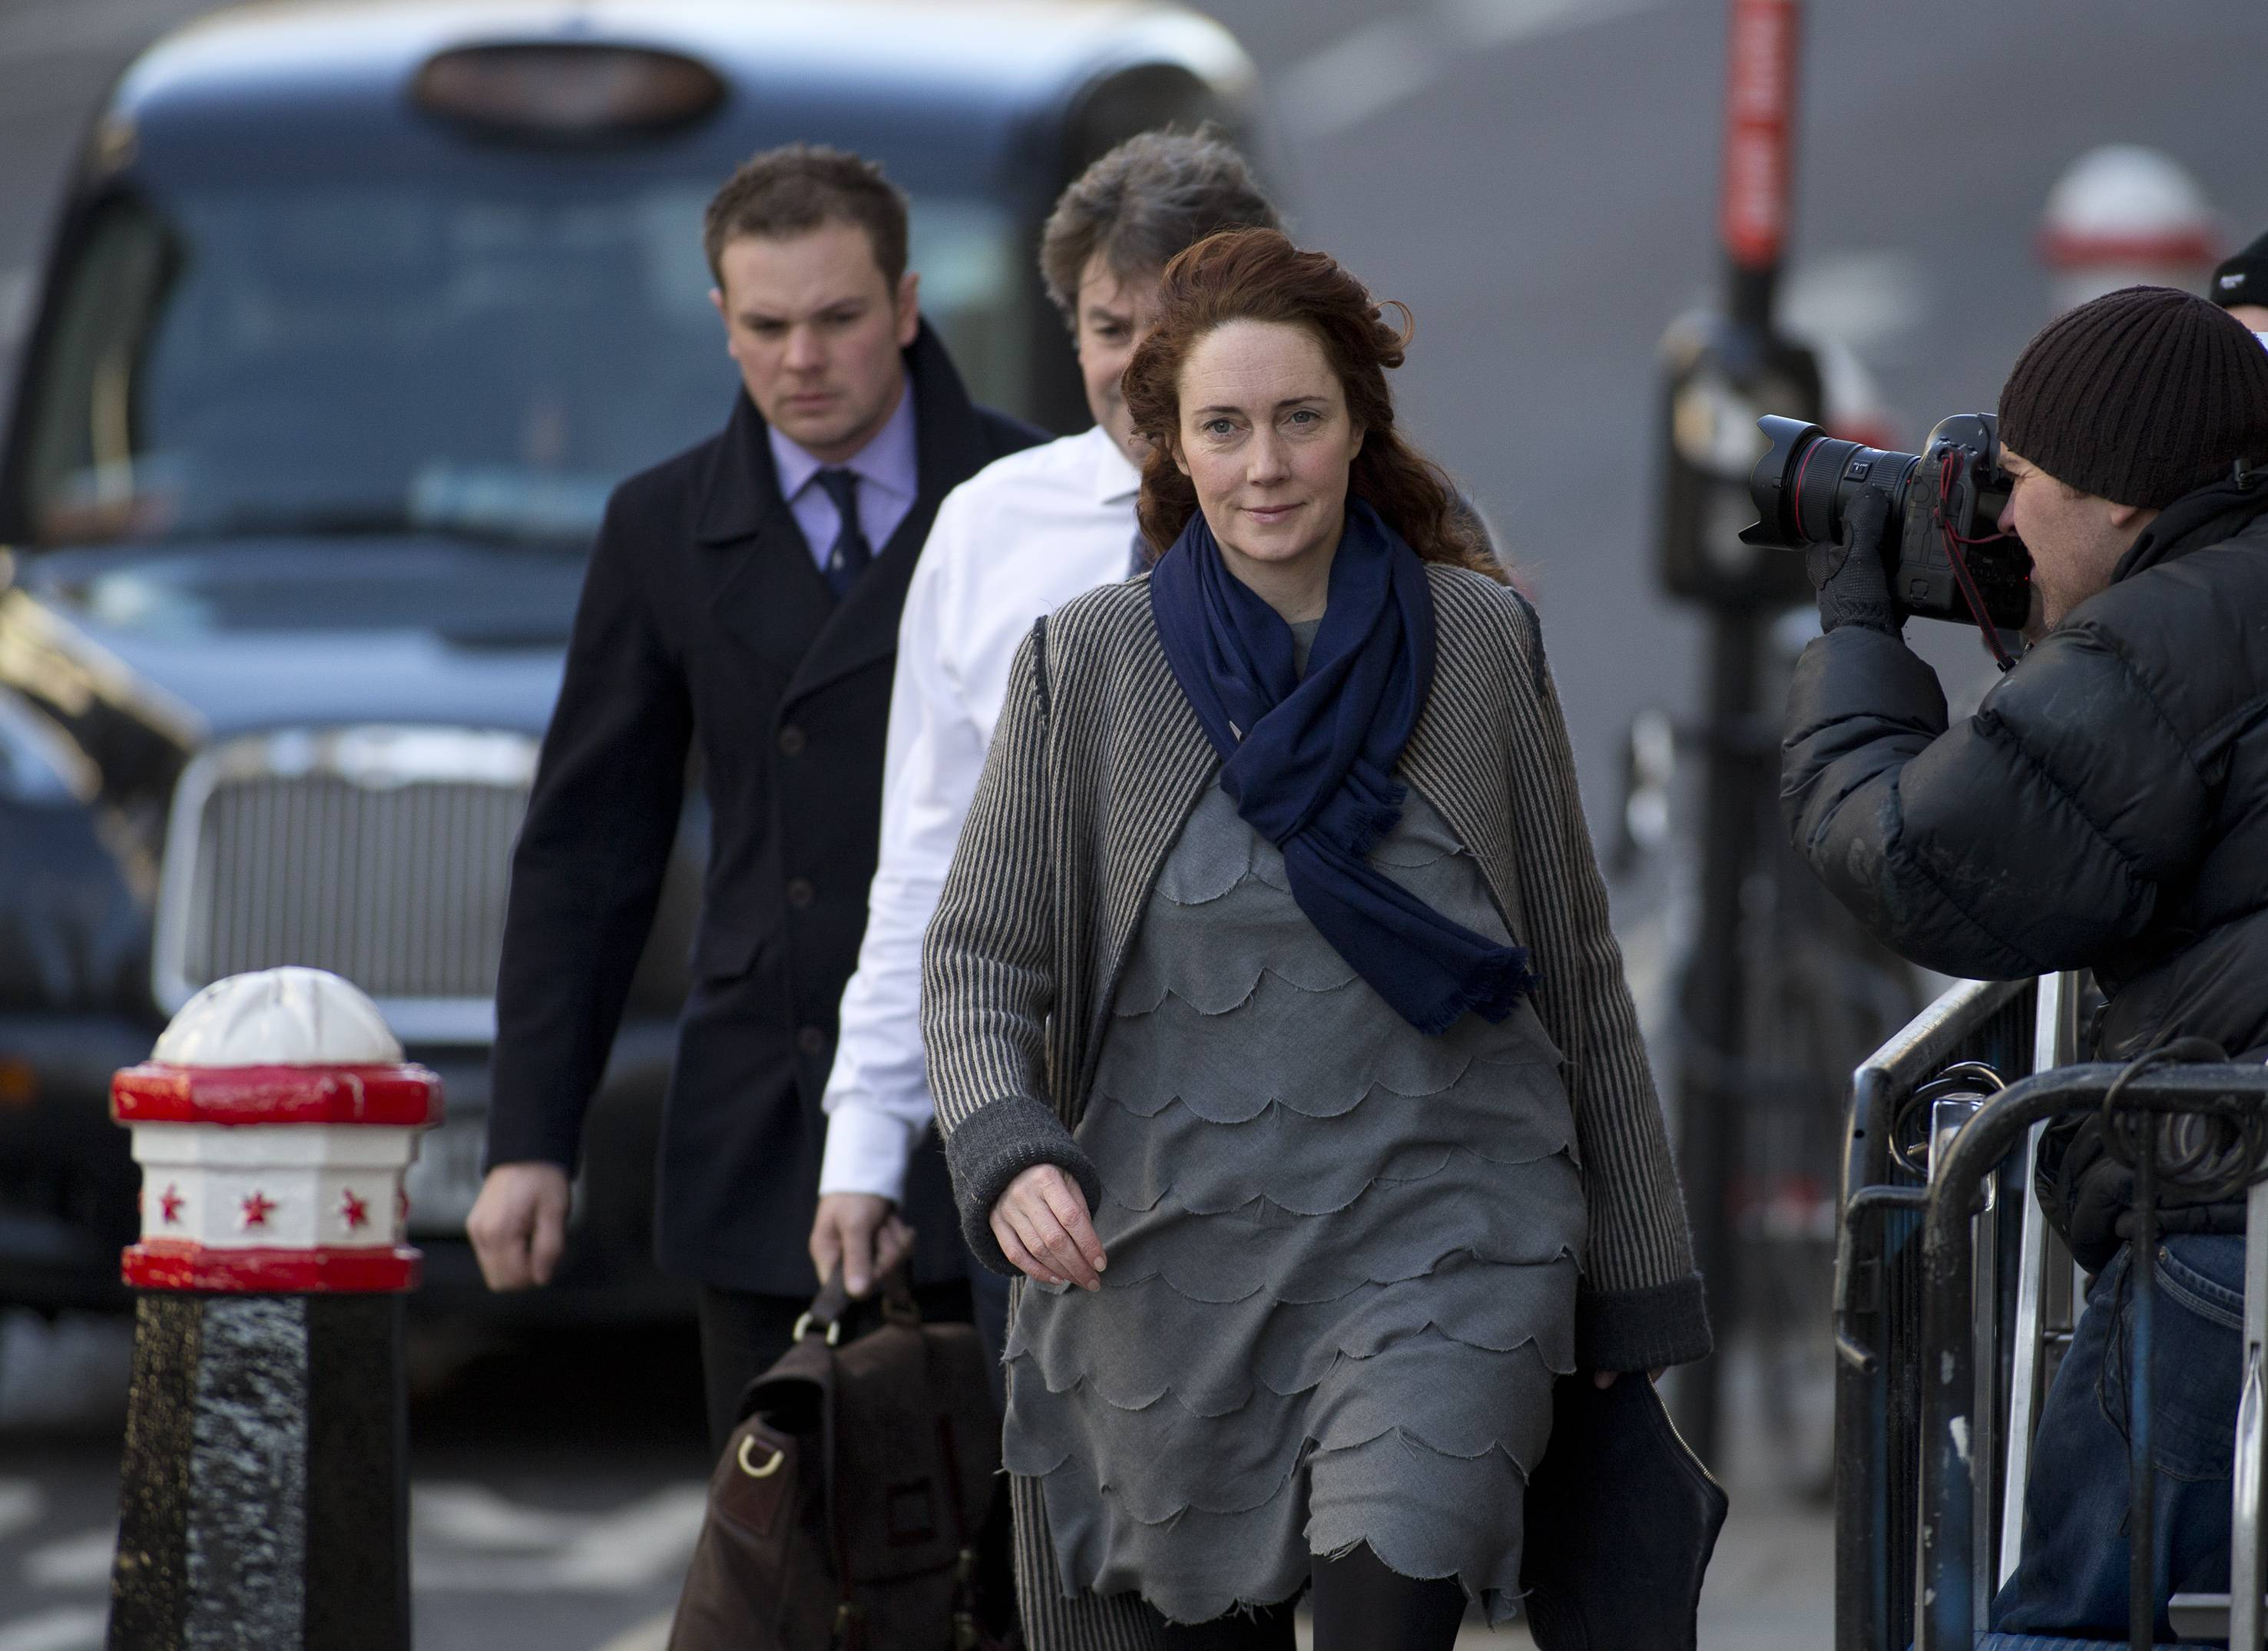 Rebekah Brooks former News International chief executive and her husband Charlie Brooks, centre rear, arrive at the Central Criminal Court in London where they appear to face charges related to phone hacking, Friday.